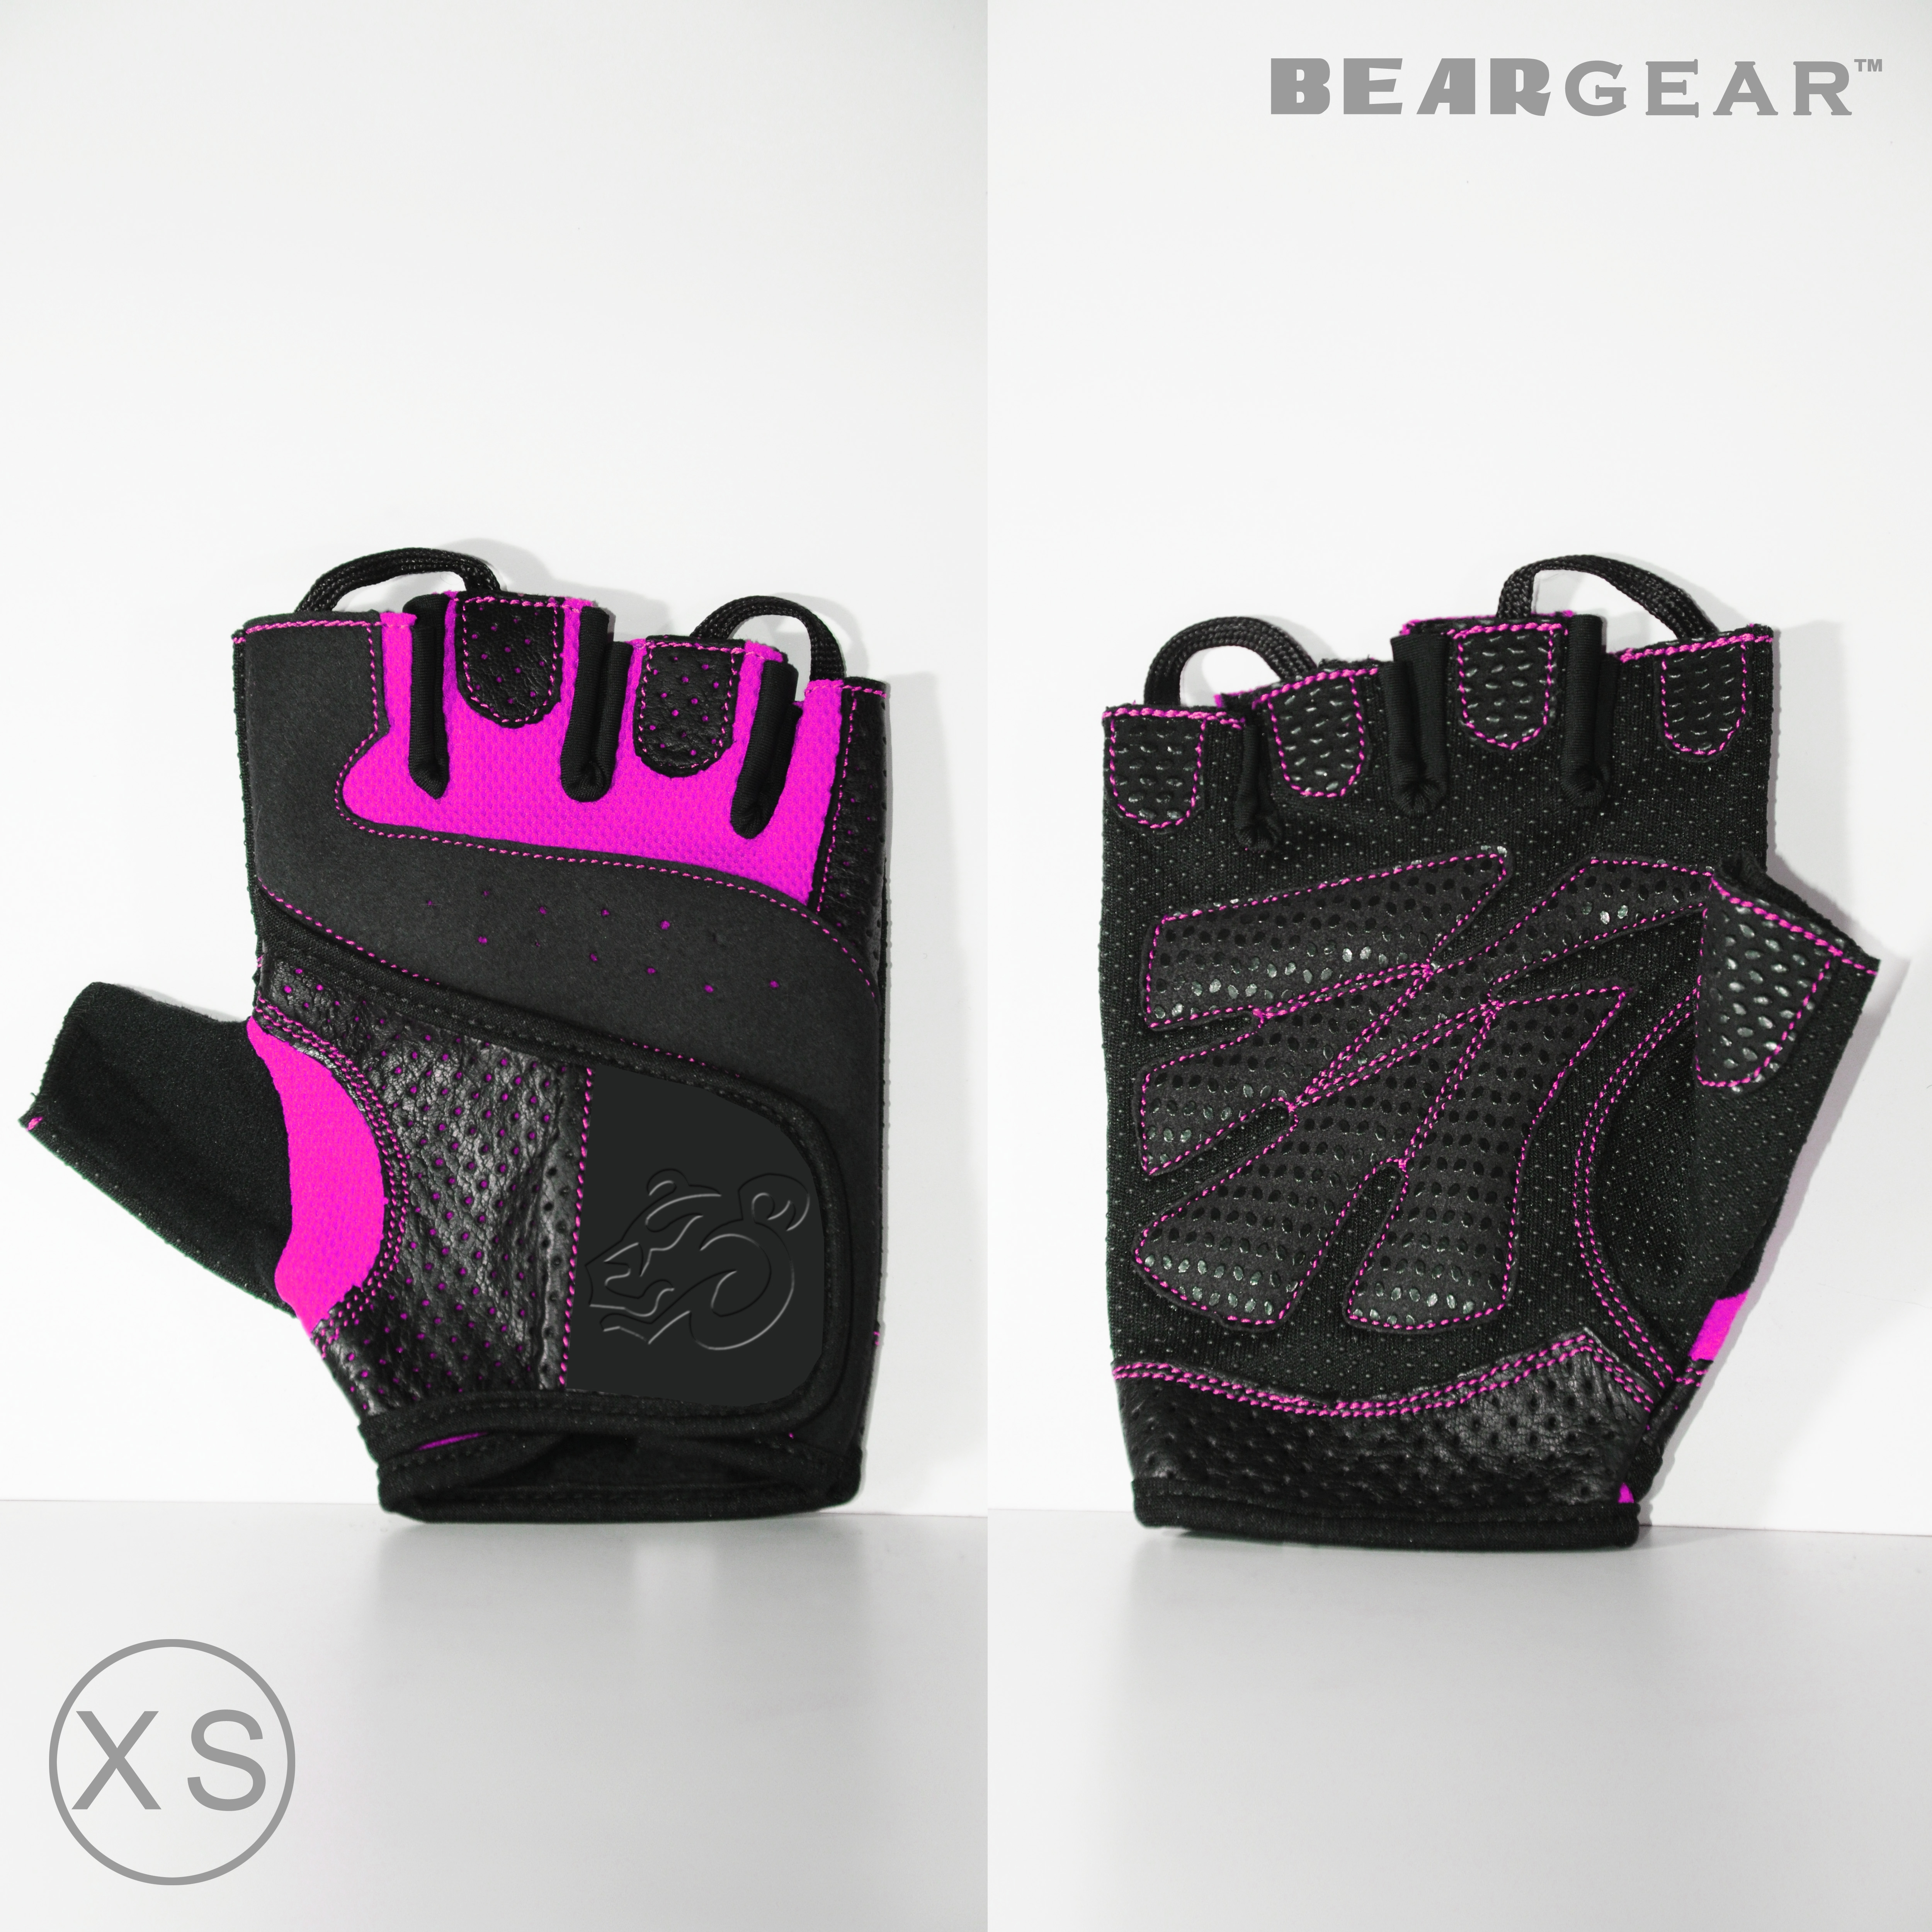 Crossfit Competition Gloves: BEARGEAR CrossFit Gloves